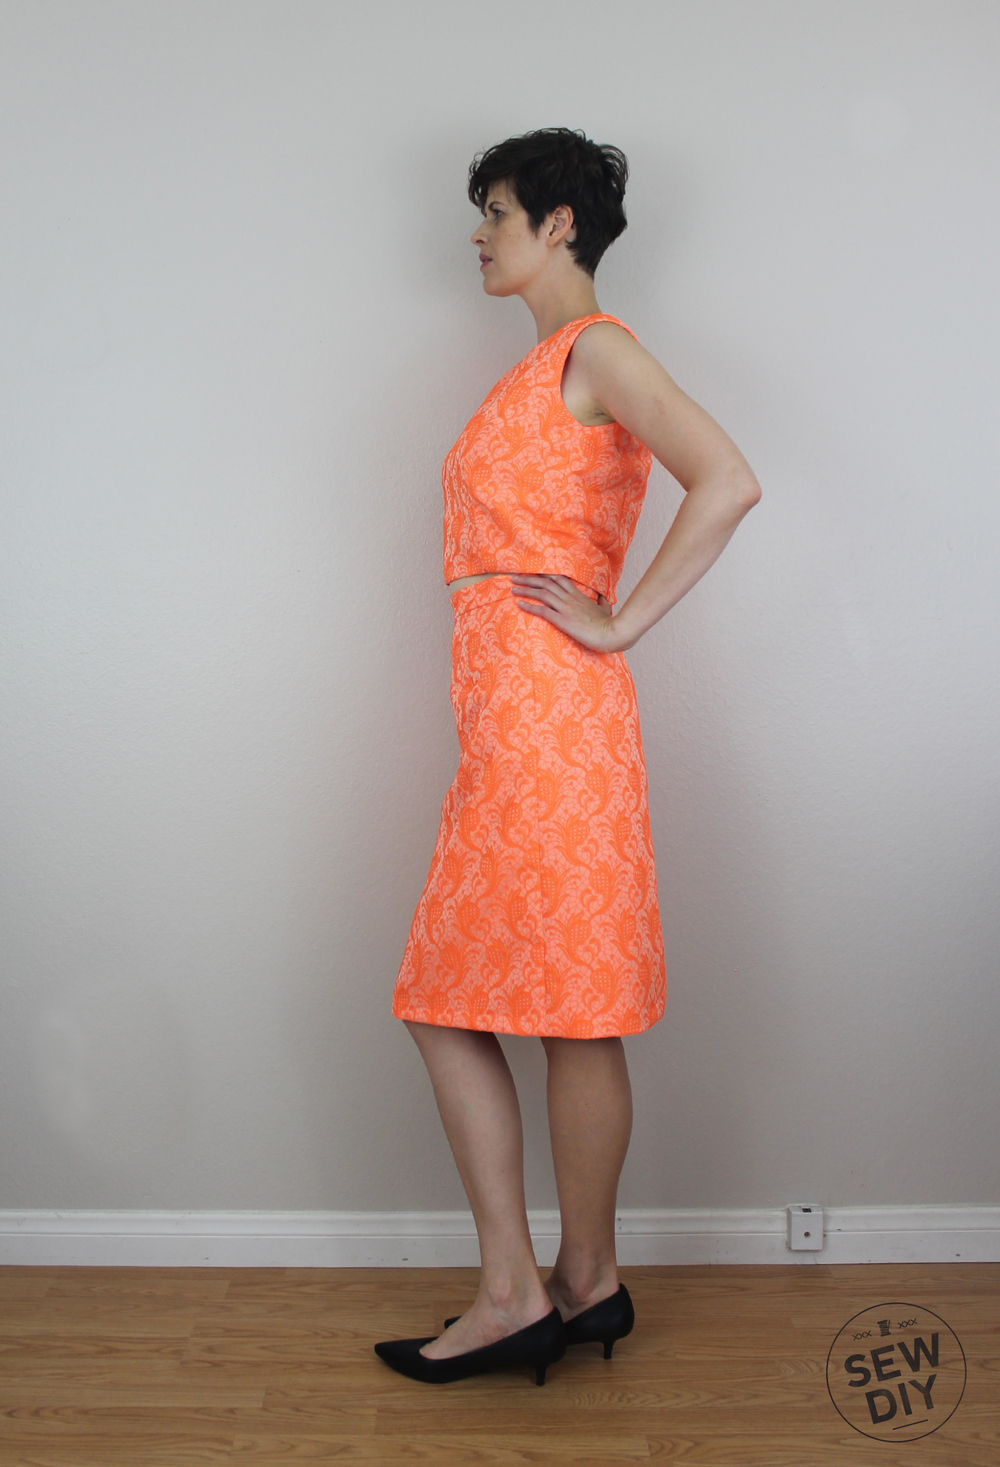 Sew DIY Orange Brocade Two Piece Setacular